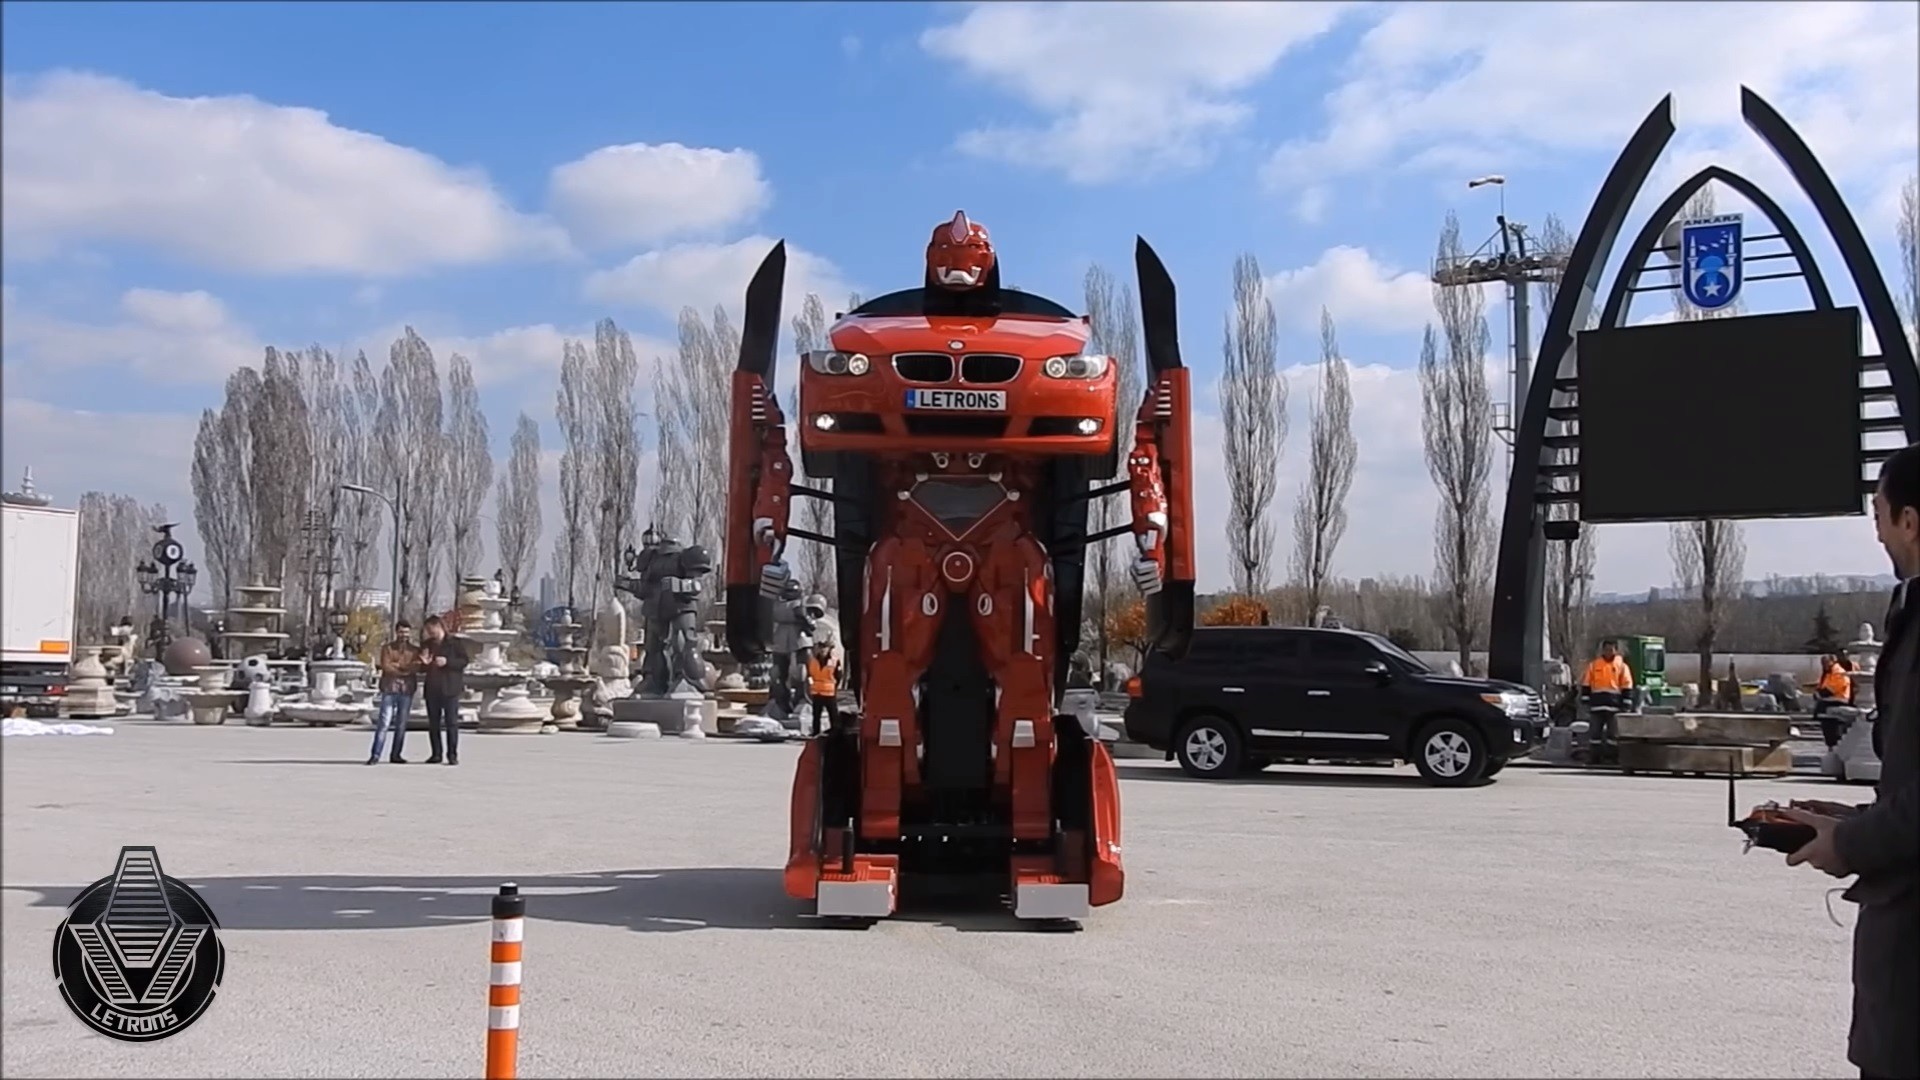 A Turkish Company Is Building Real-World Transformers